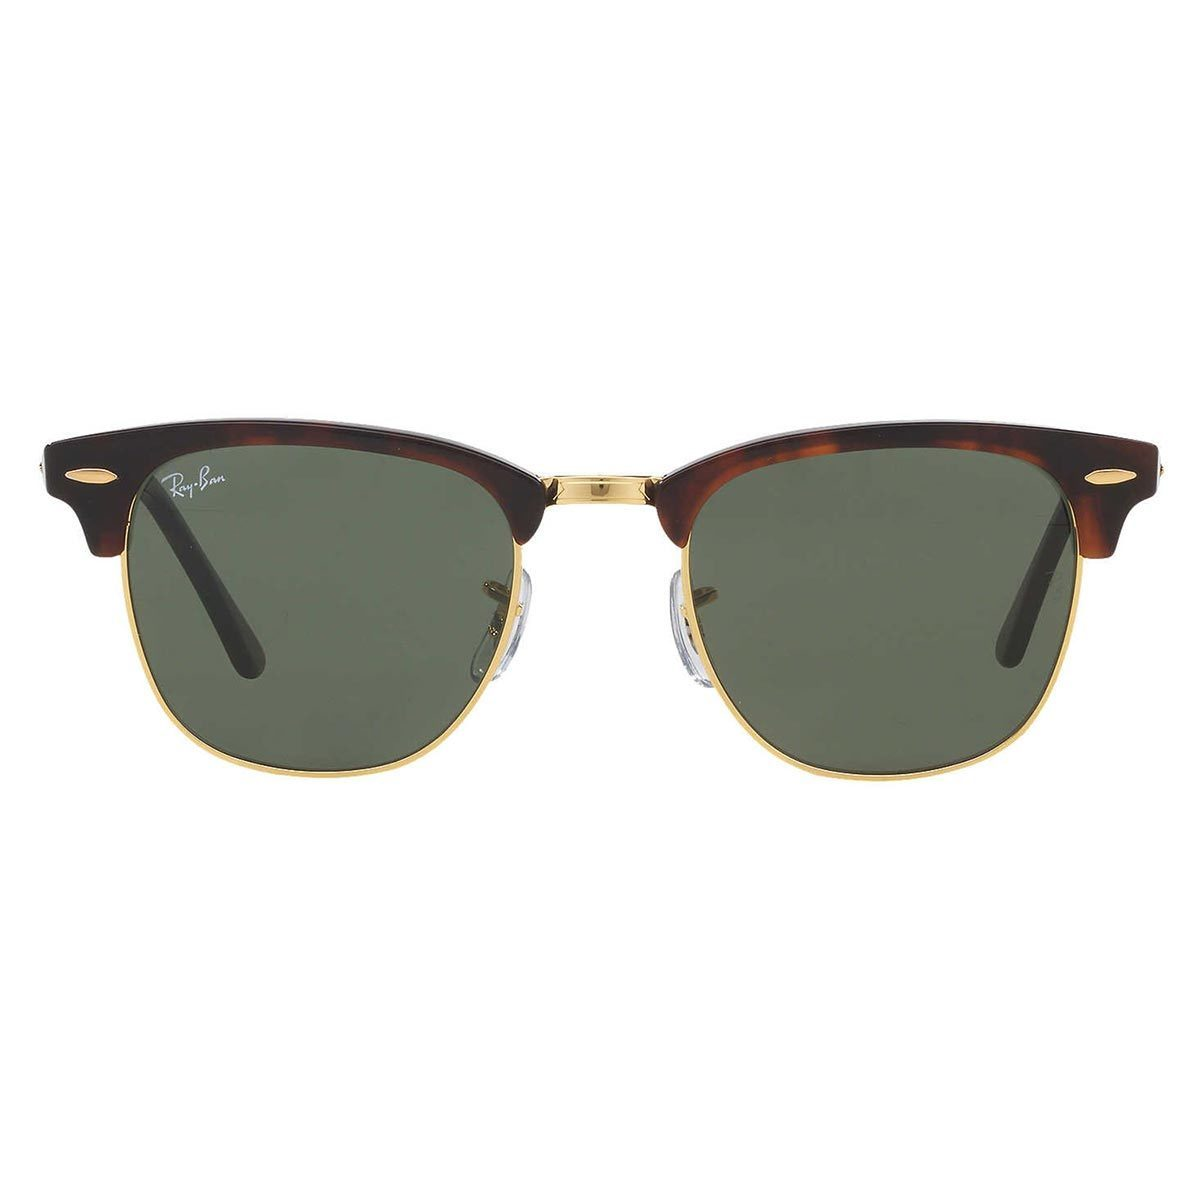 90b95d772ee Shop Ray-Ban Clubmaster RB 3016 Unisex Tortoise Frame Green Classic Lens  Sunglasses - Free Shipping Today - Overstock - 6852790